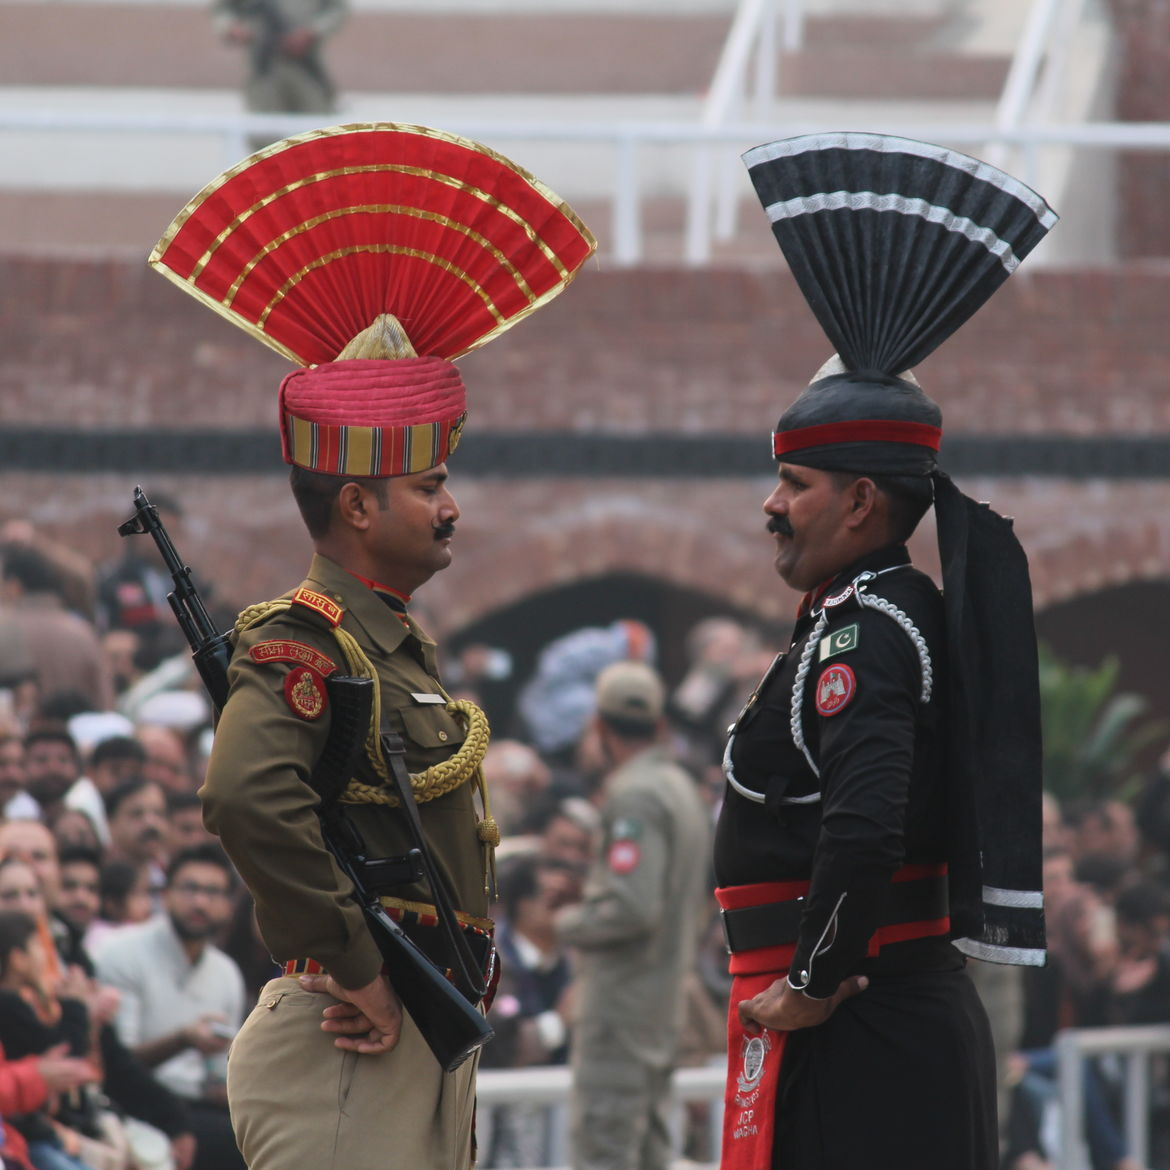 Cover Photo: Beating retreat ceremony at Wagah Border of India-Pakistan/Wikipedia